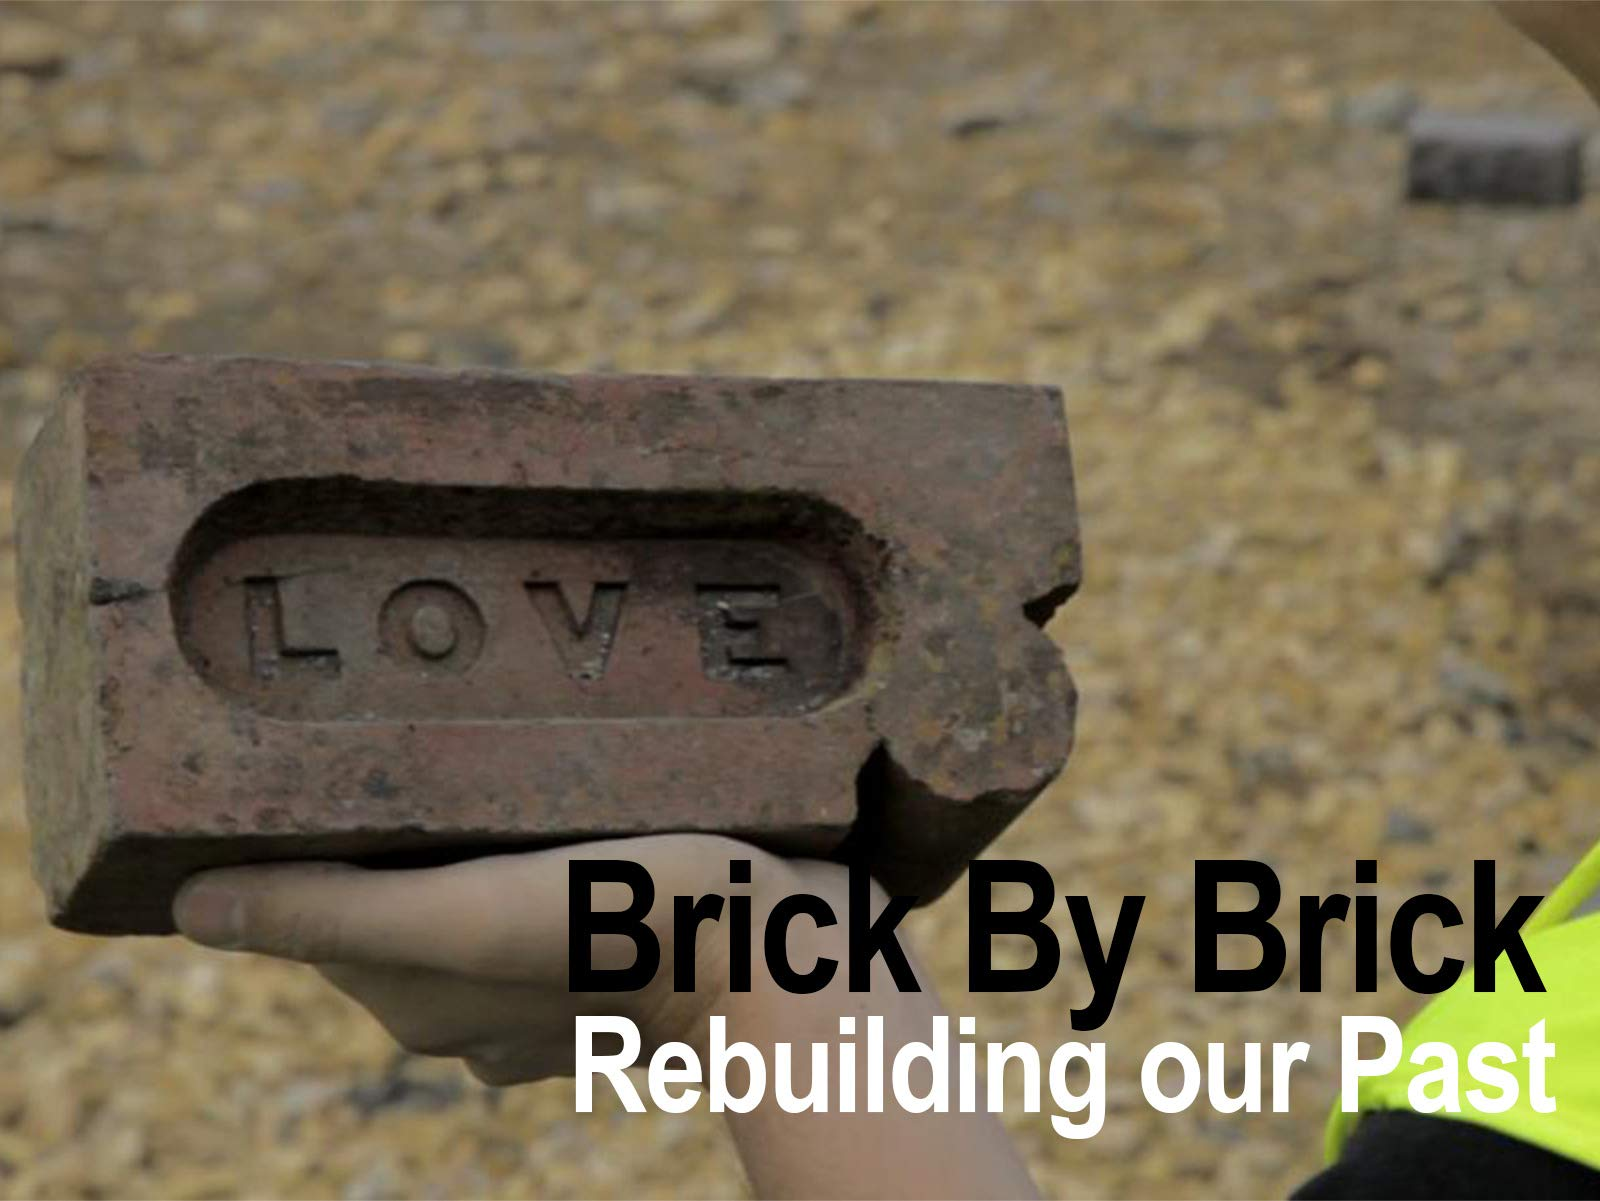 Brick By Brick: Rebuilding Our Past